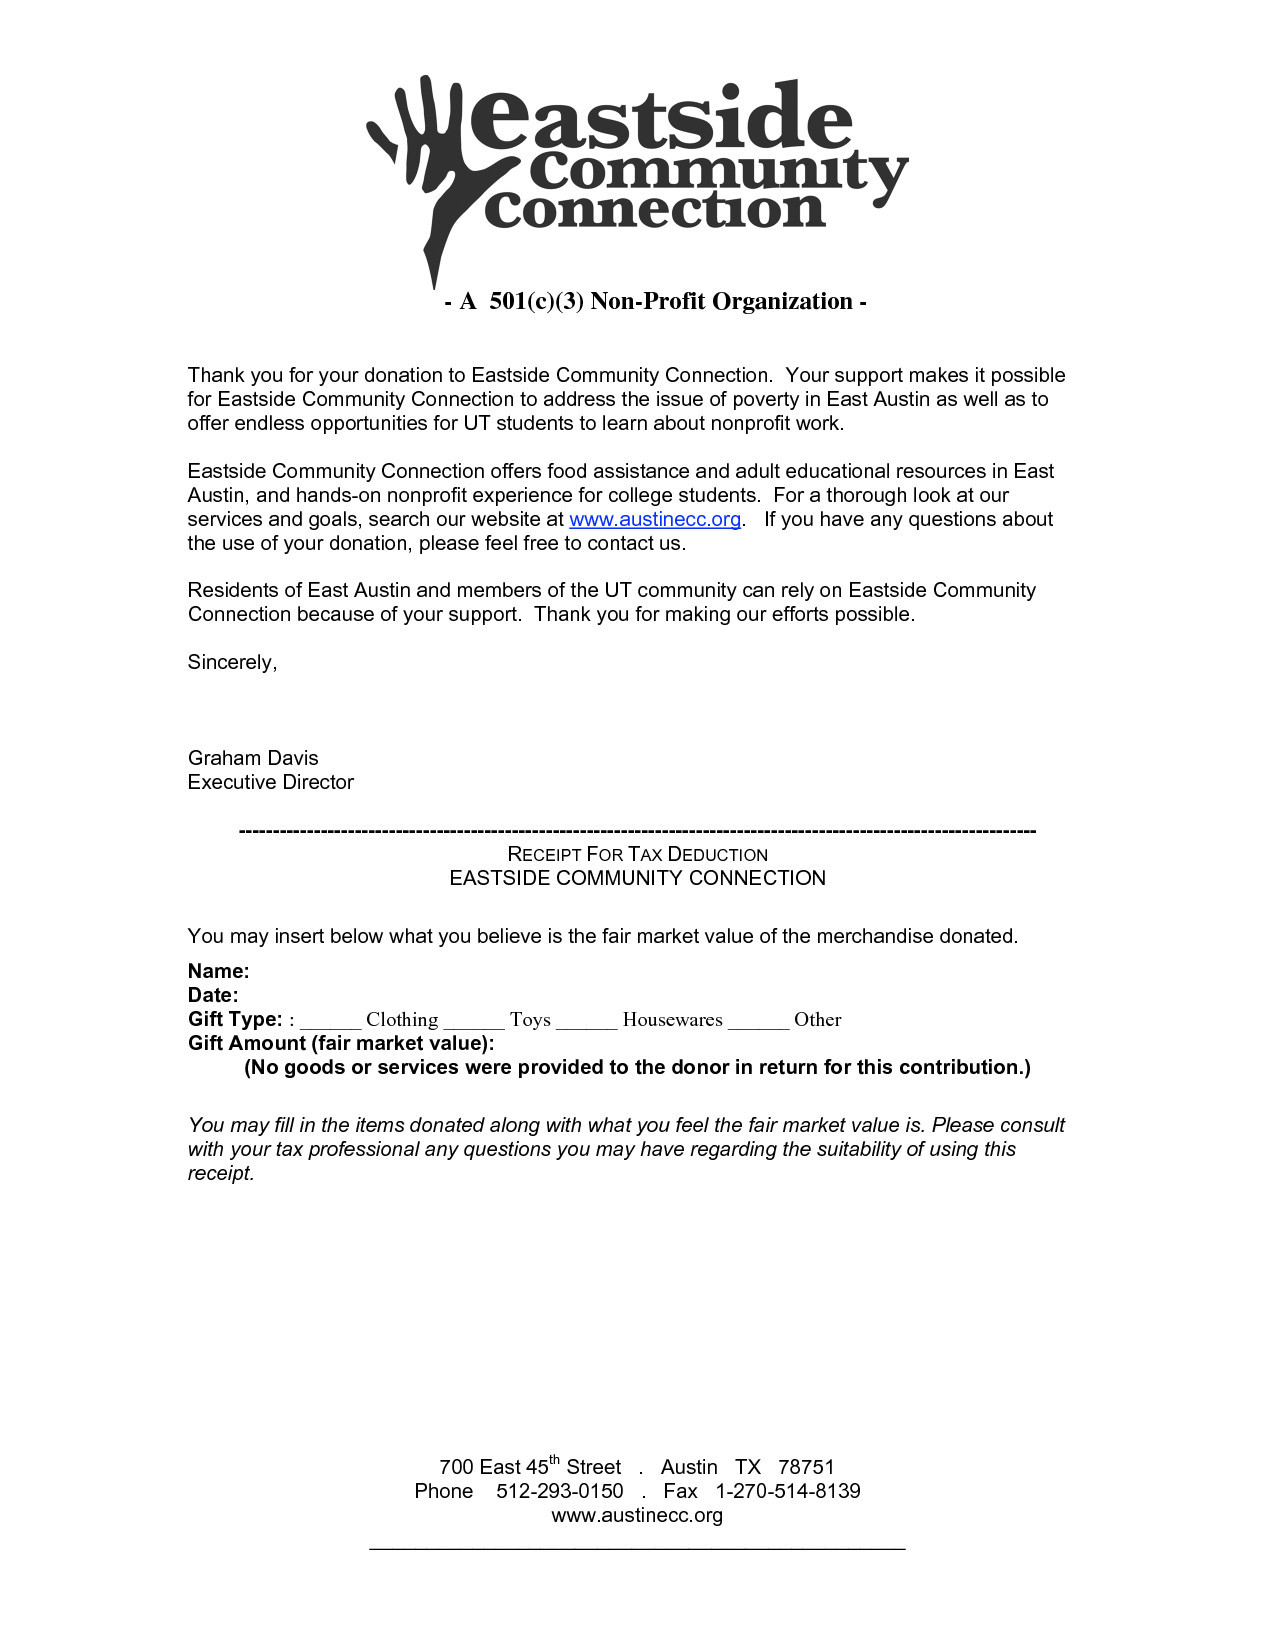 Sponsorship Letter Template for Non Profit - Exceptional Tax Donation Letter Template